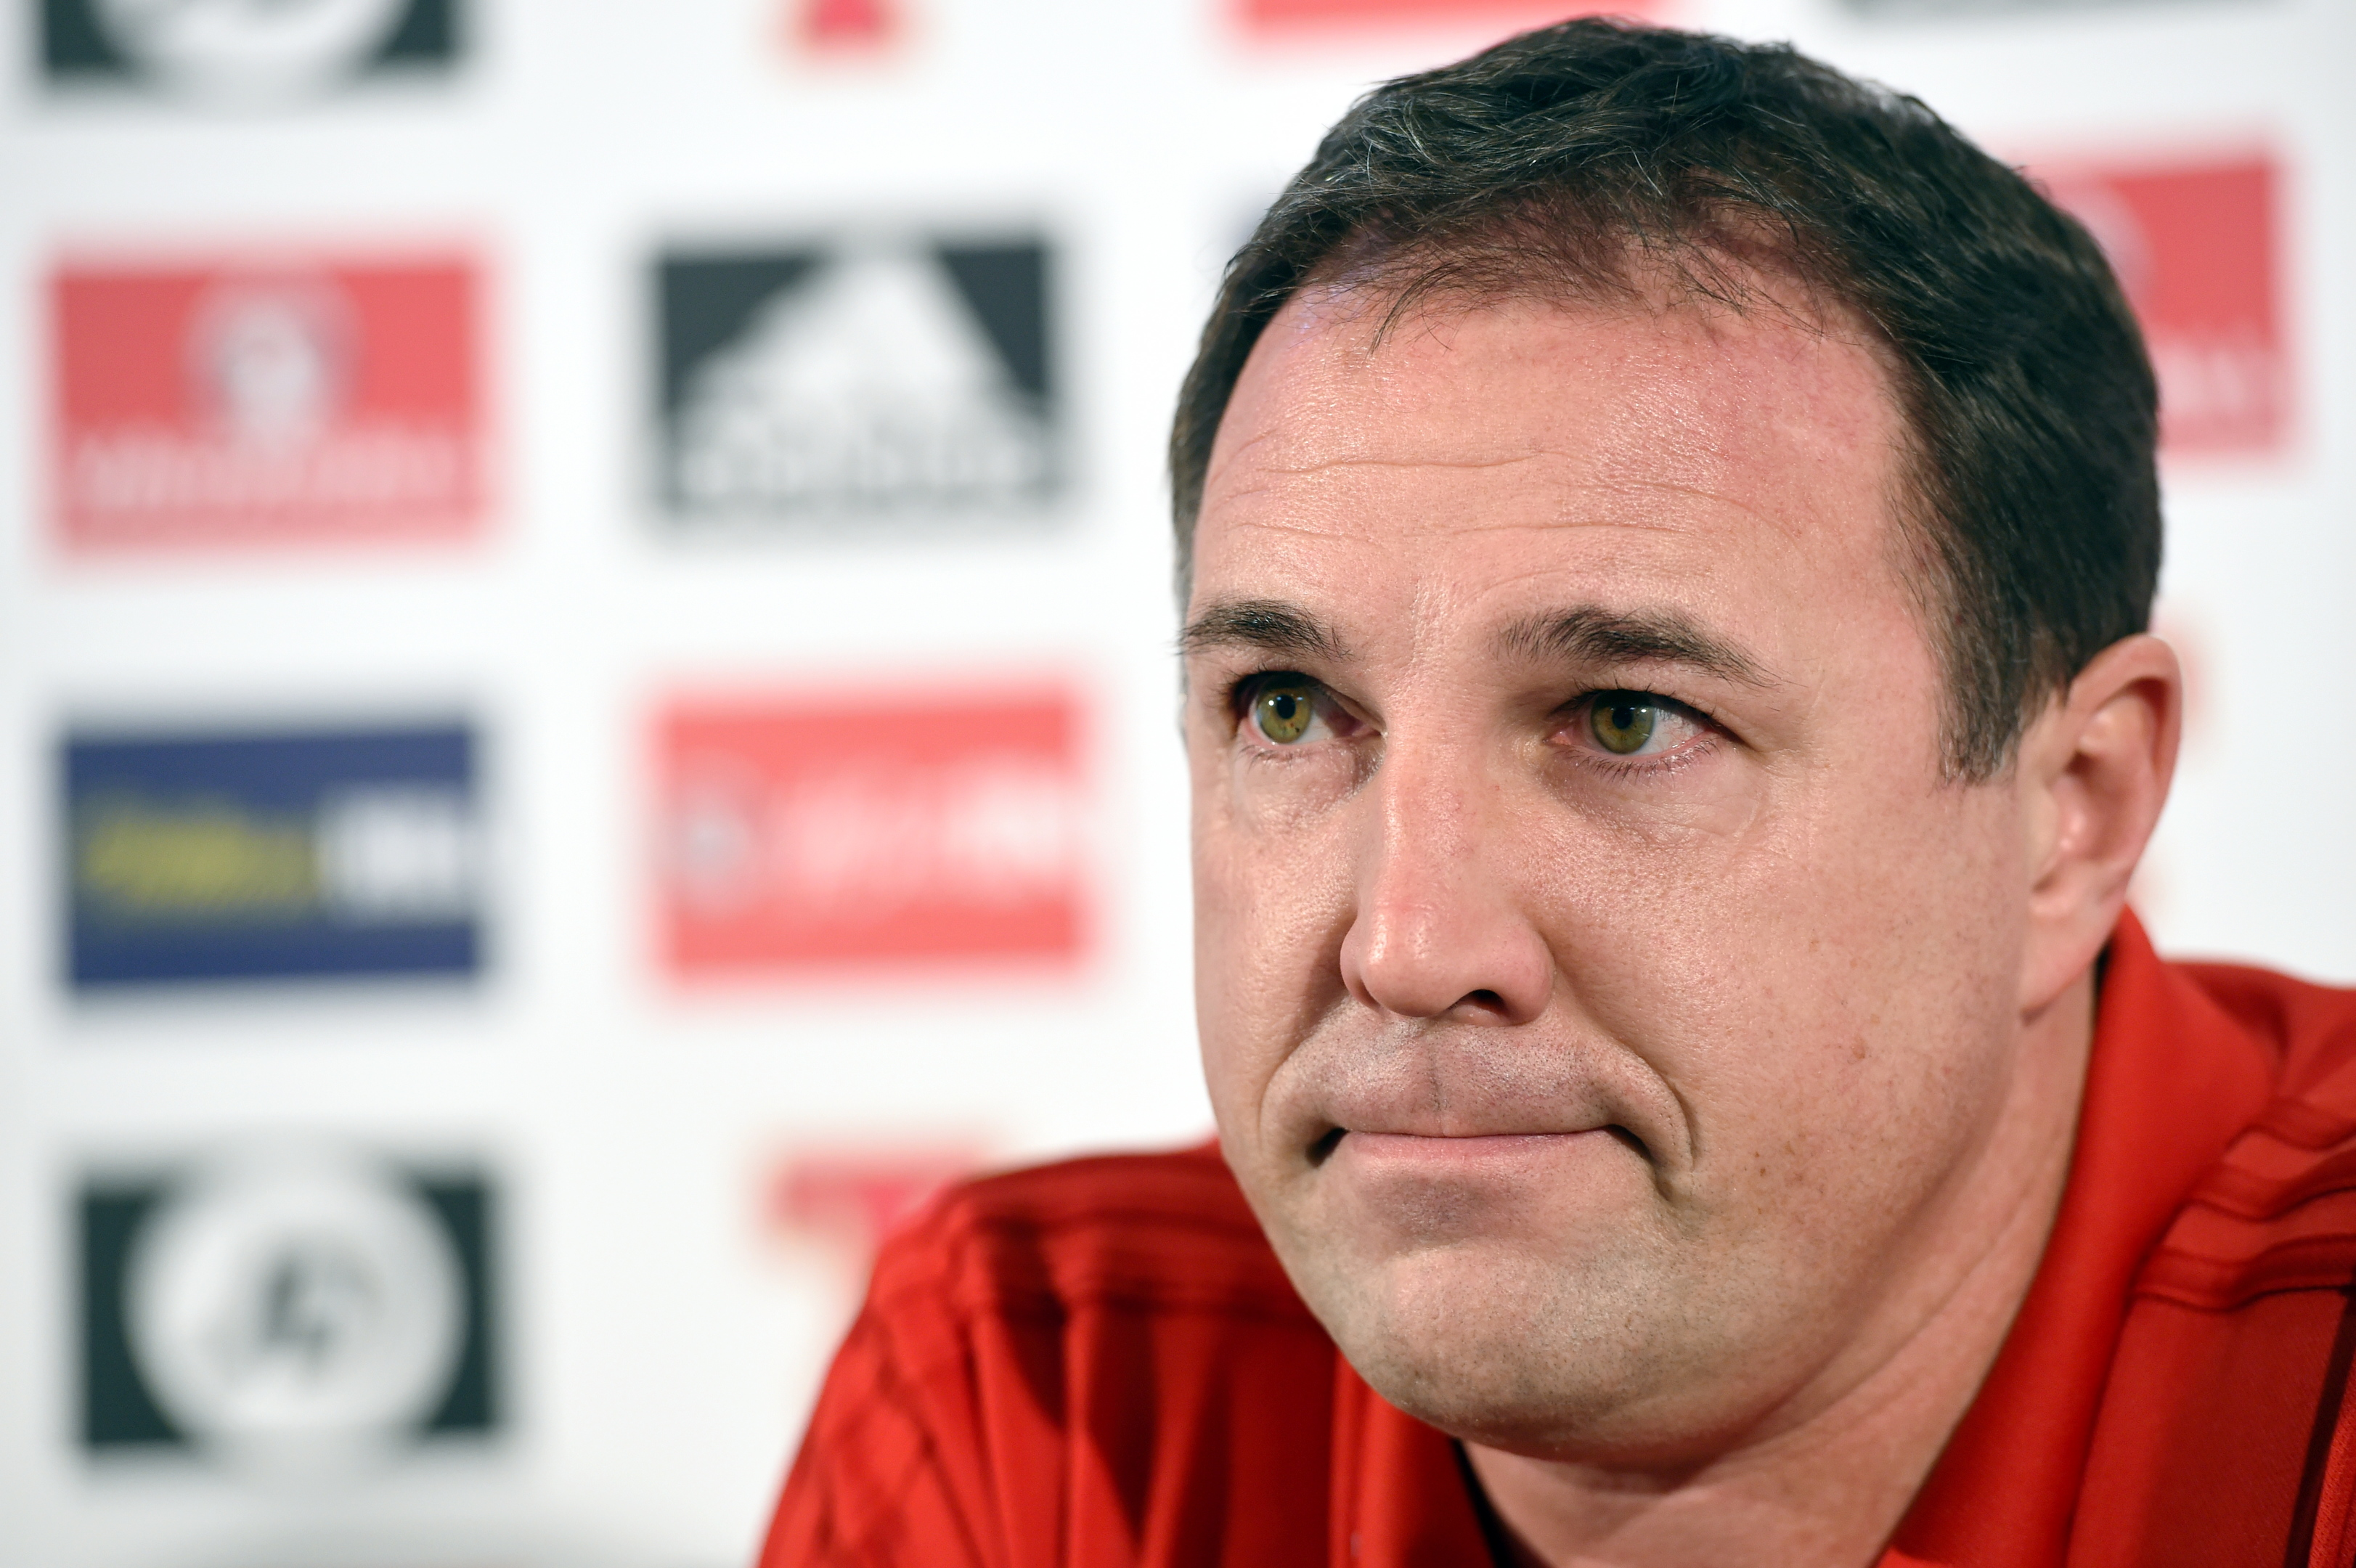 Scotland interim manager Malky Mackay at Pittodrie Stadium (Darrell Benns / DC Thomson)